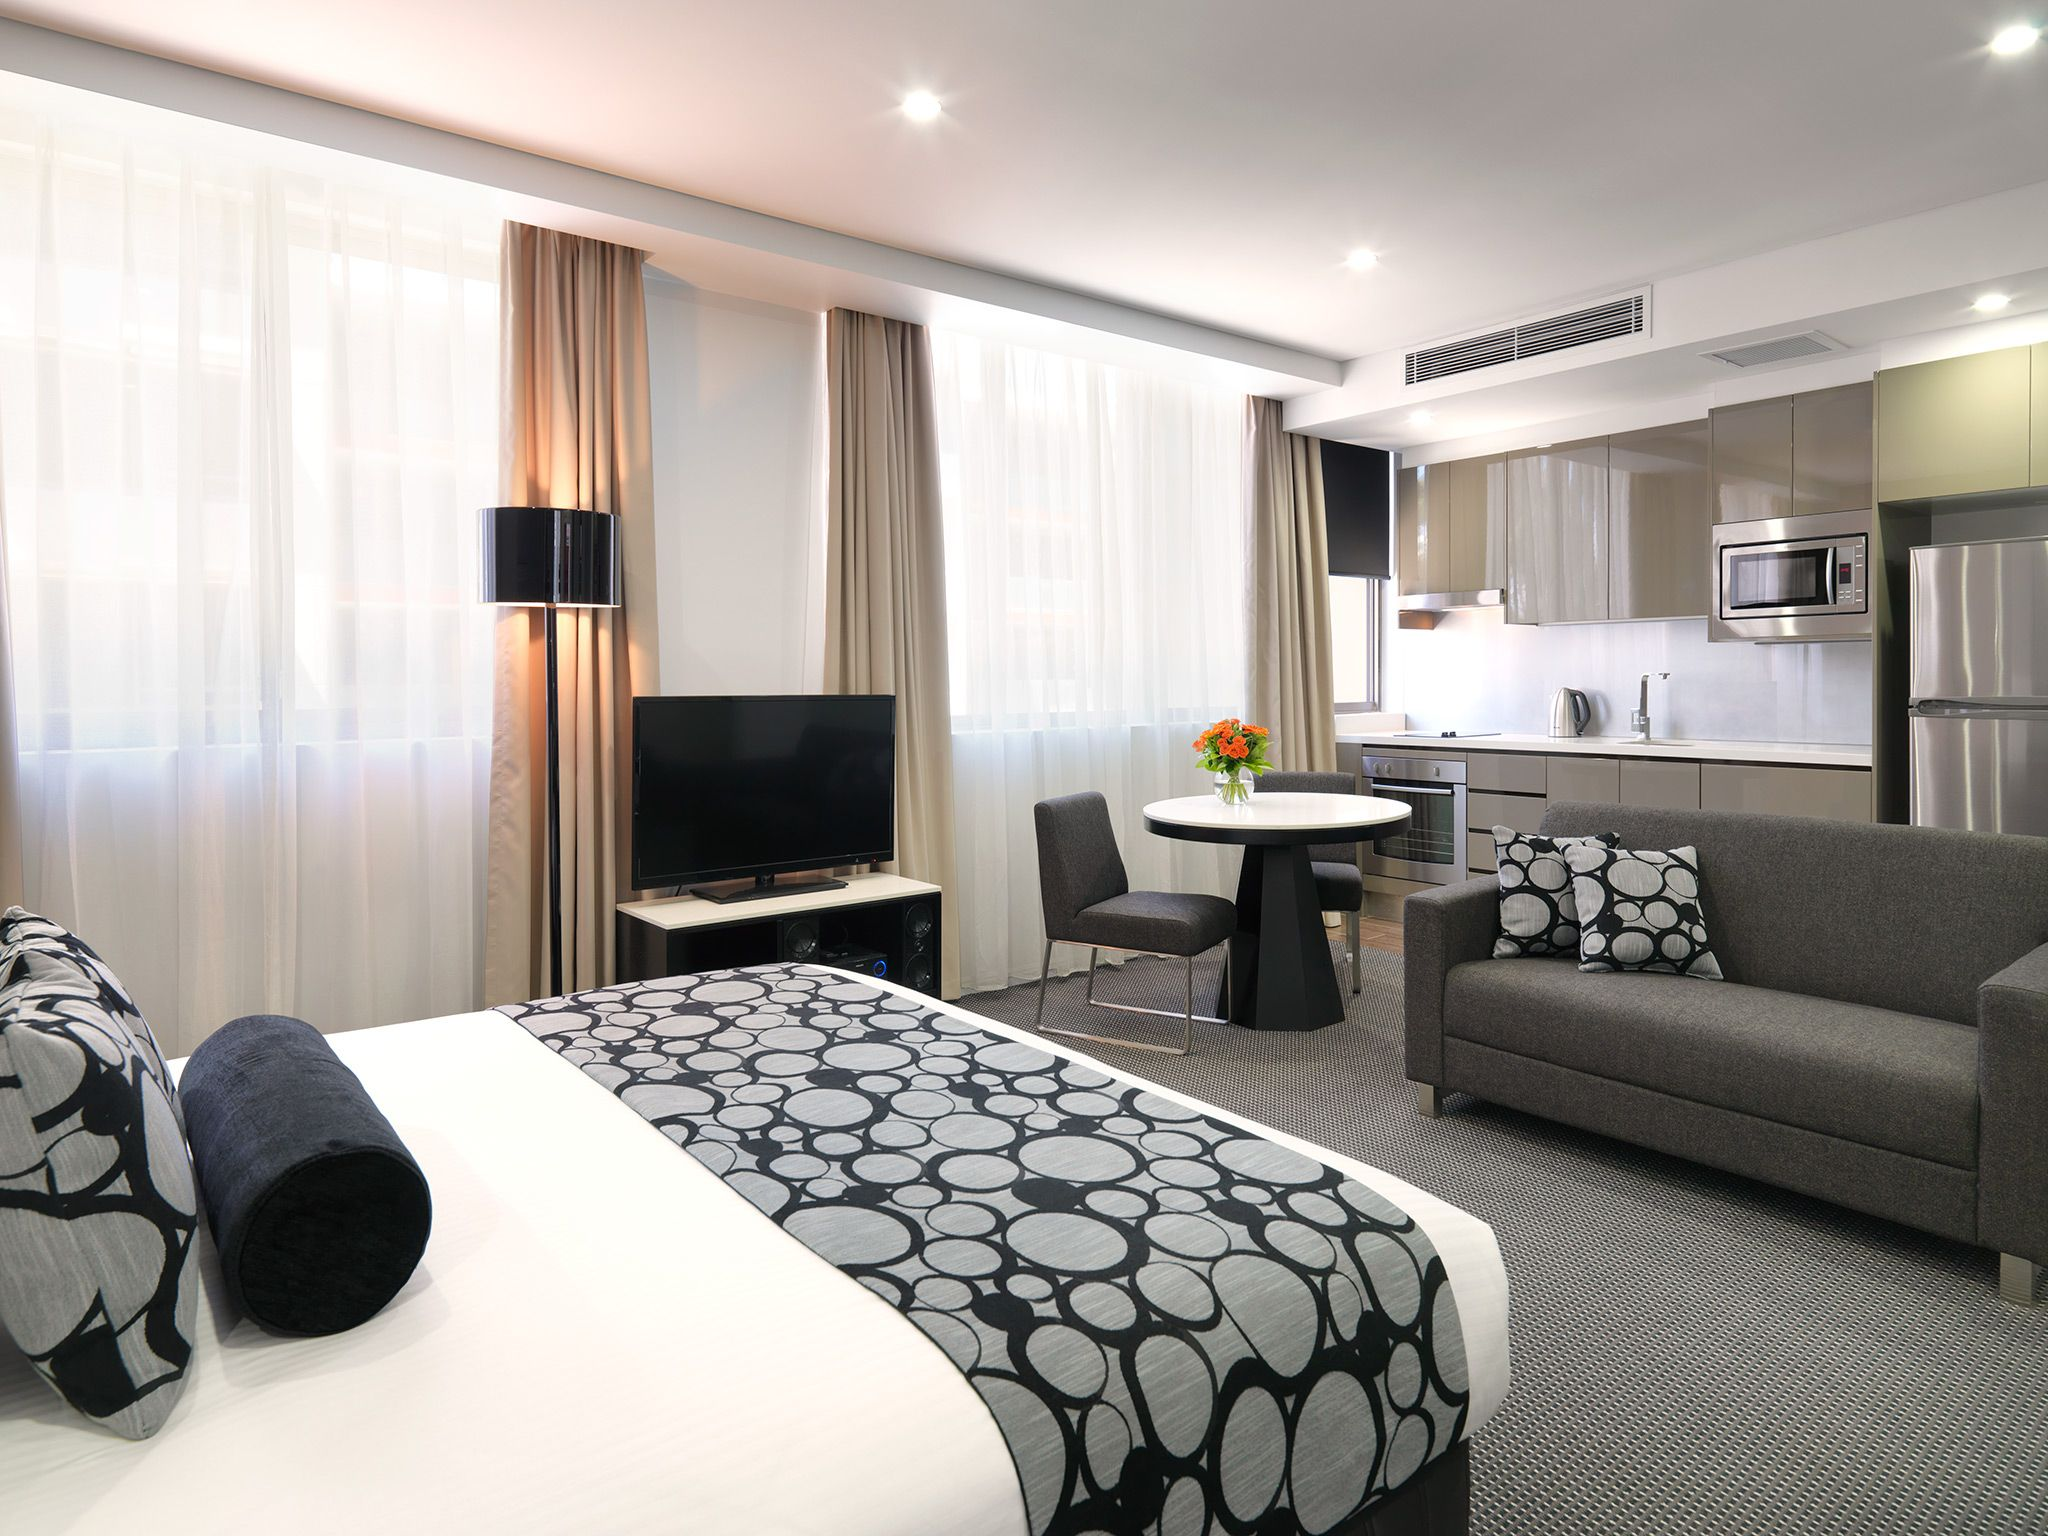 North Ryde Reserve Direct For Best Rates Home, Suites